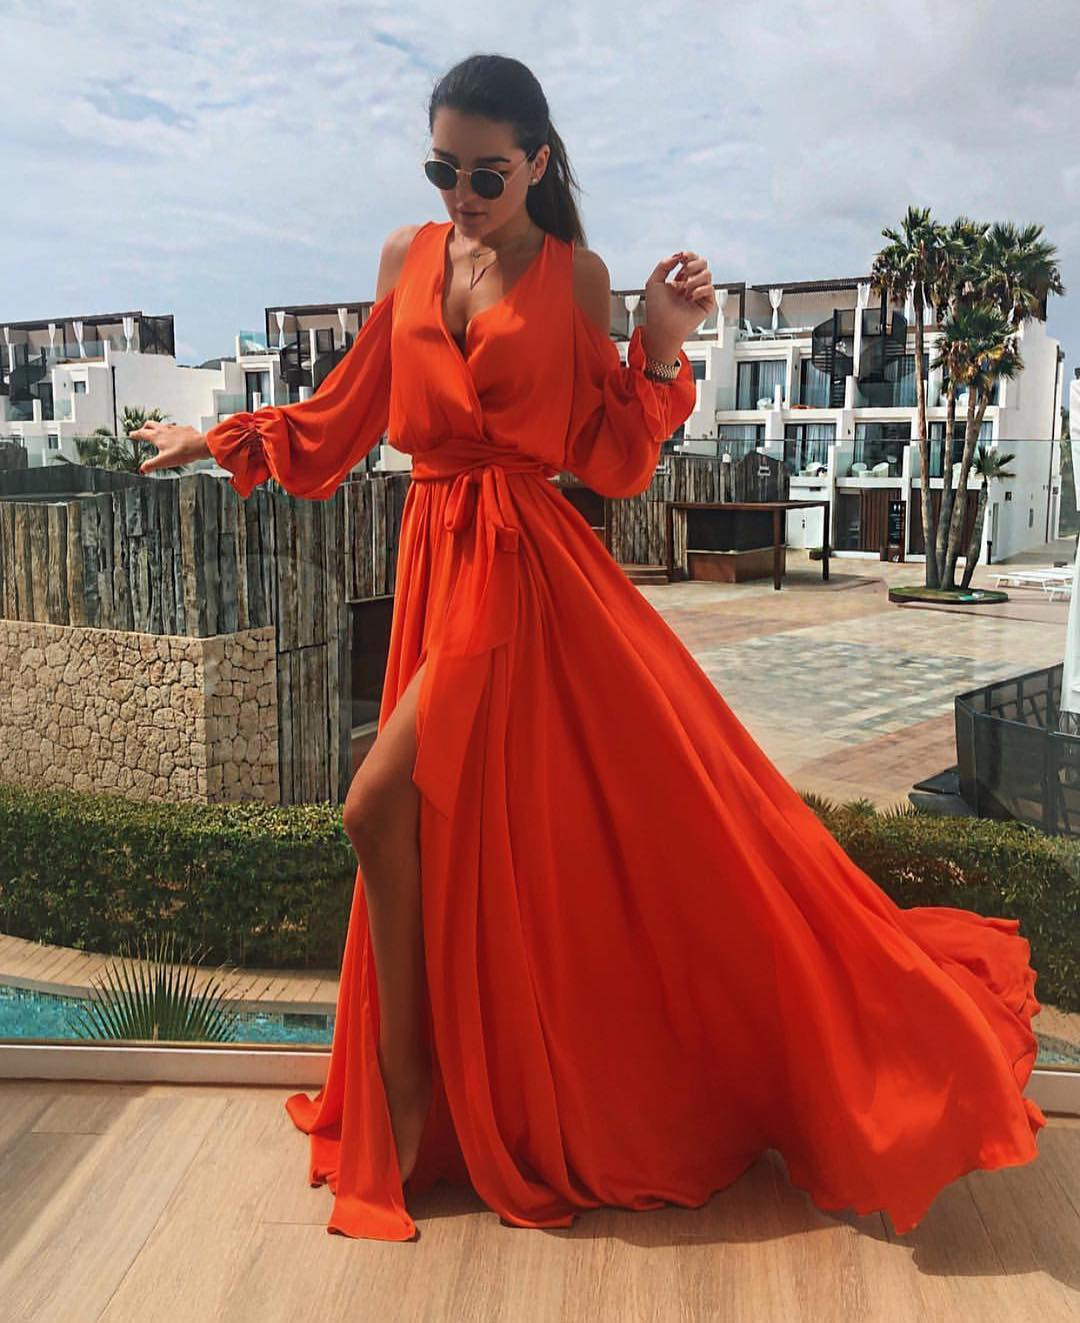 Red Orange Maxi Dress In Silk For Summer Glamour Parties 2019